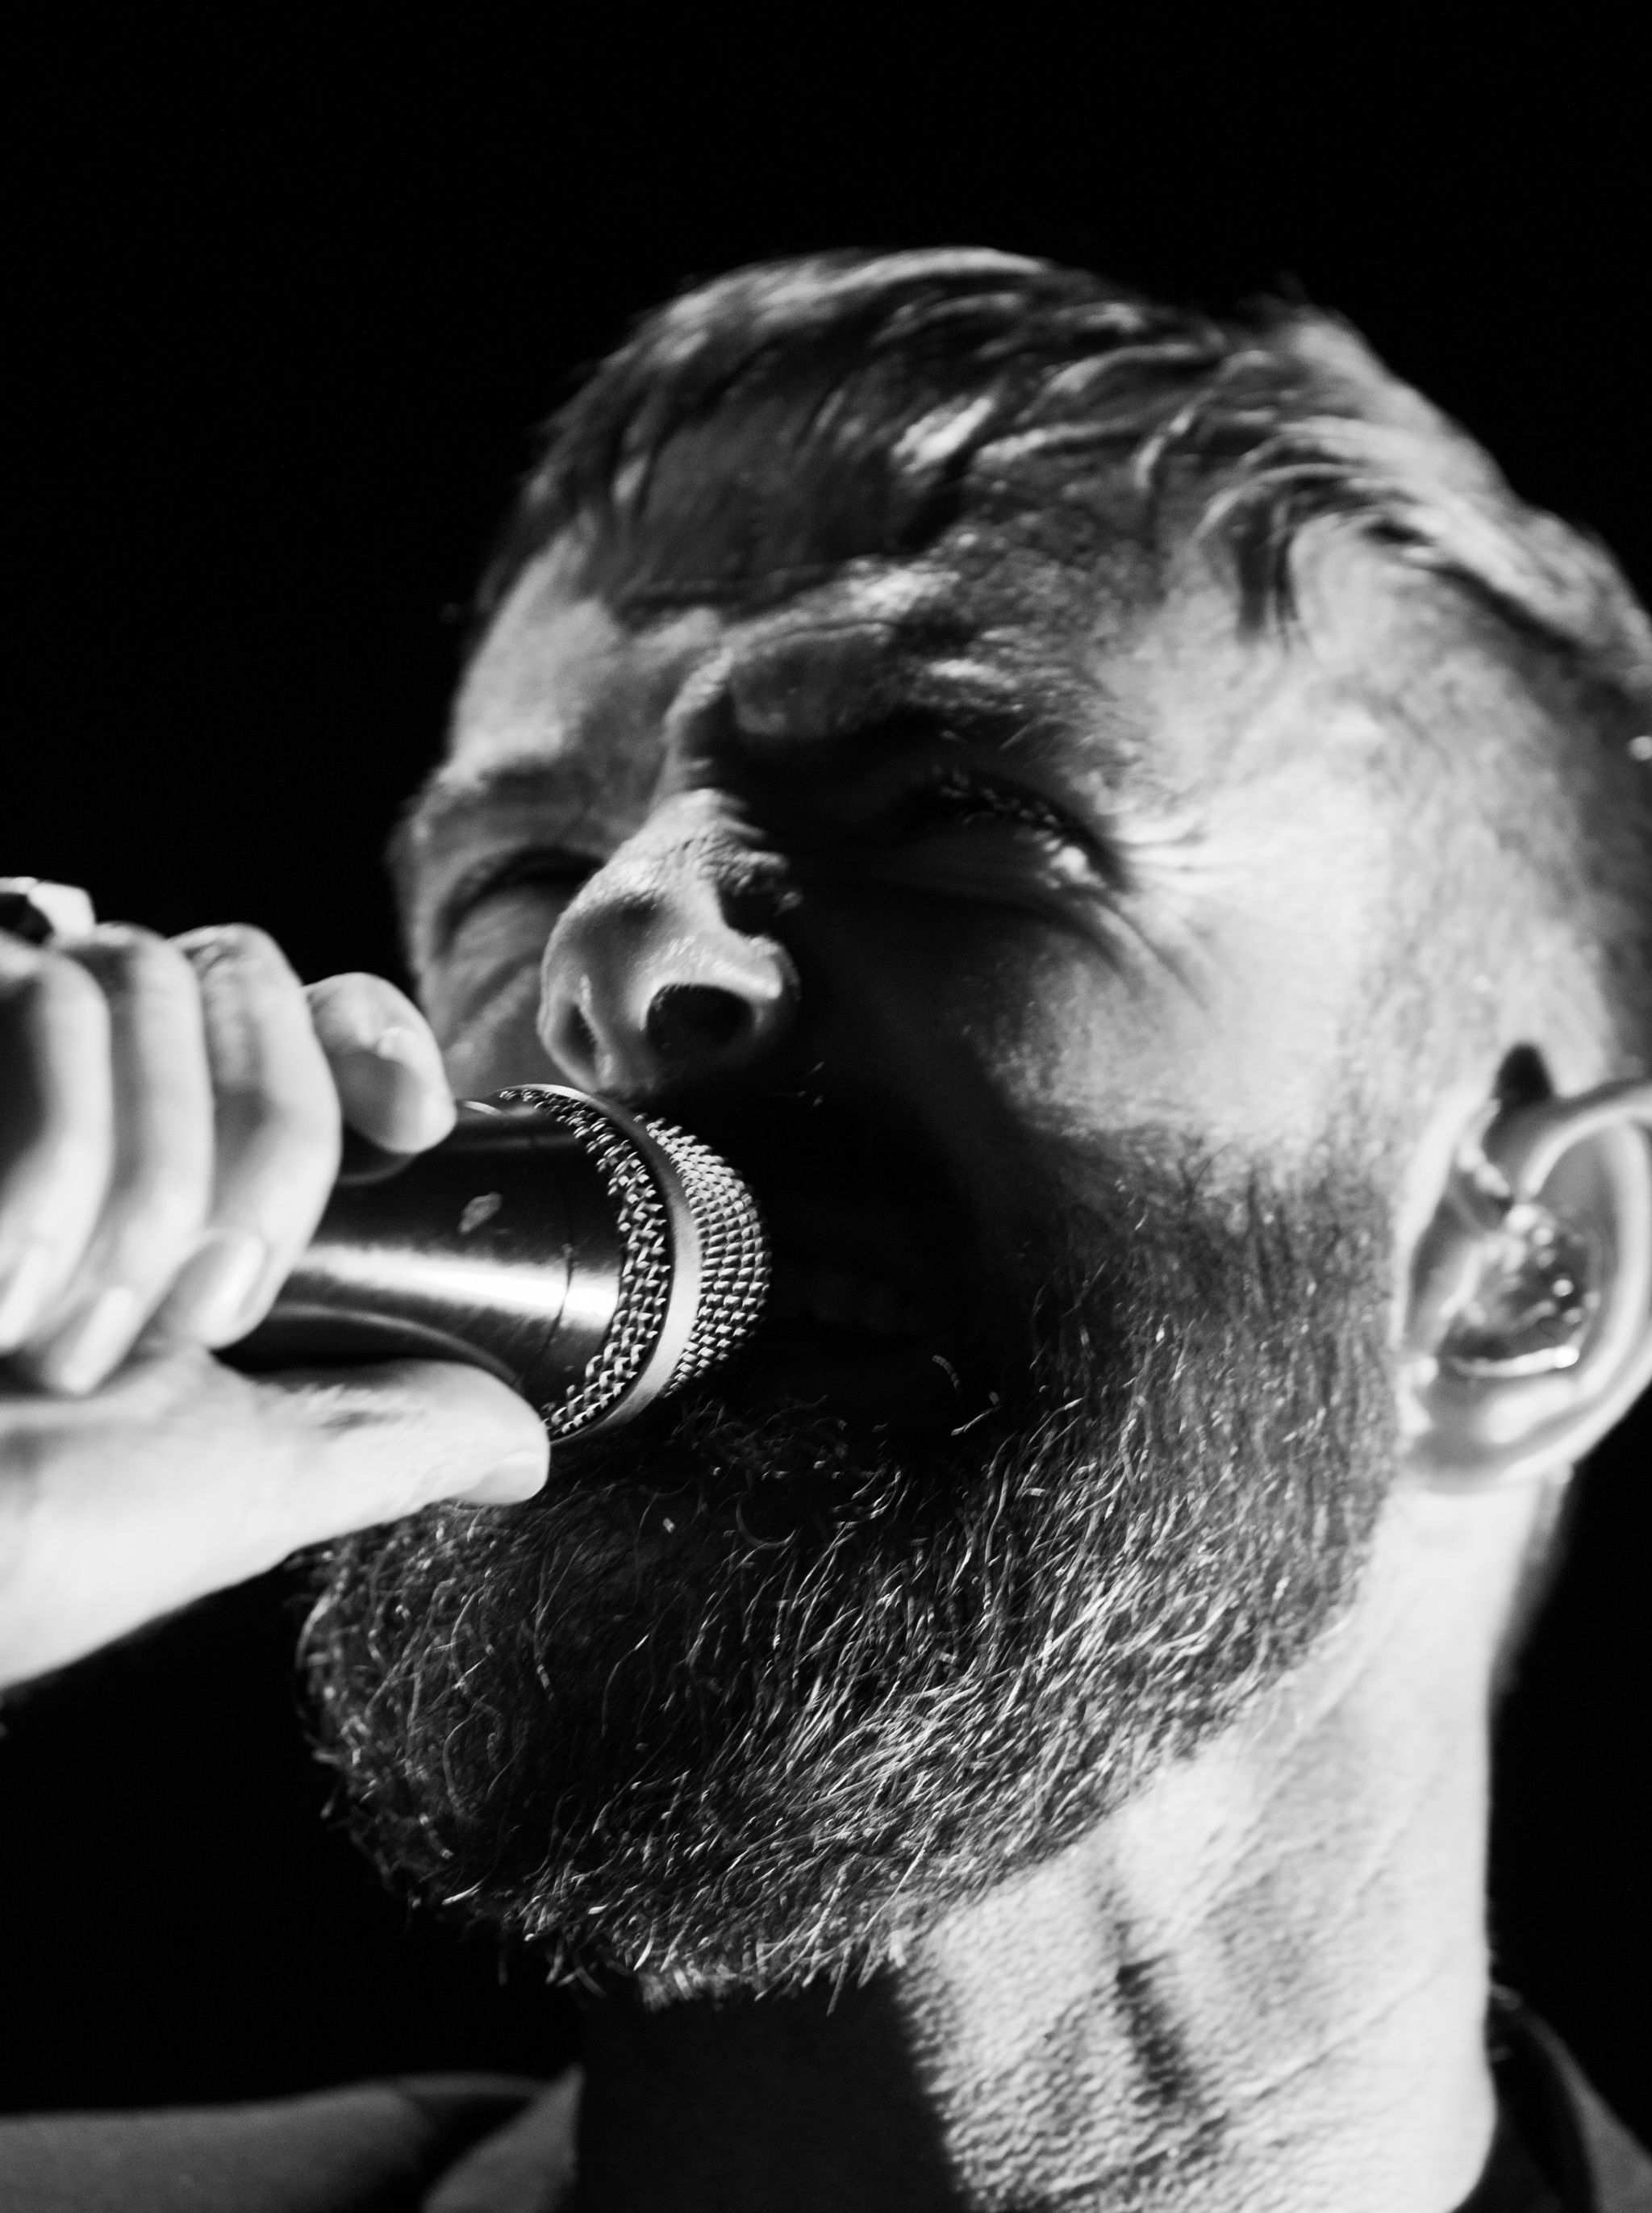 [Gig Review] Karnivool, Southeast Desert Metal - Saturday, 1 June 2019 - Kambri, ANU